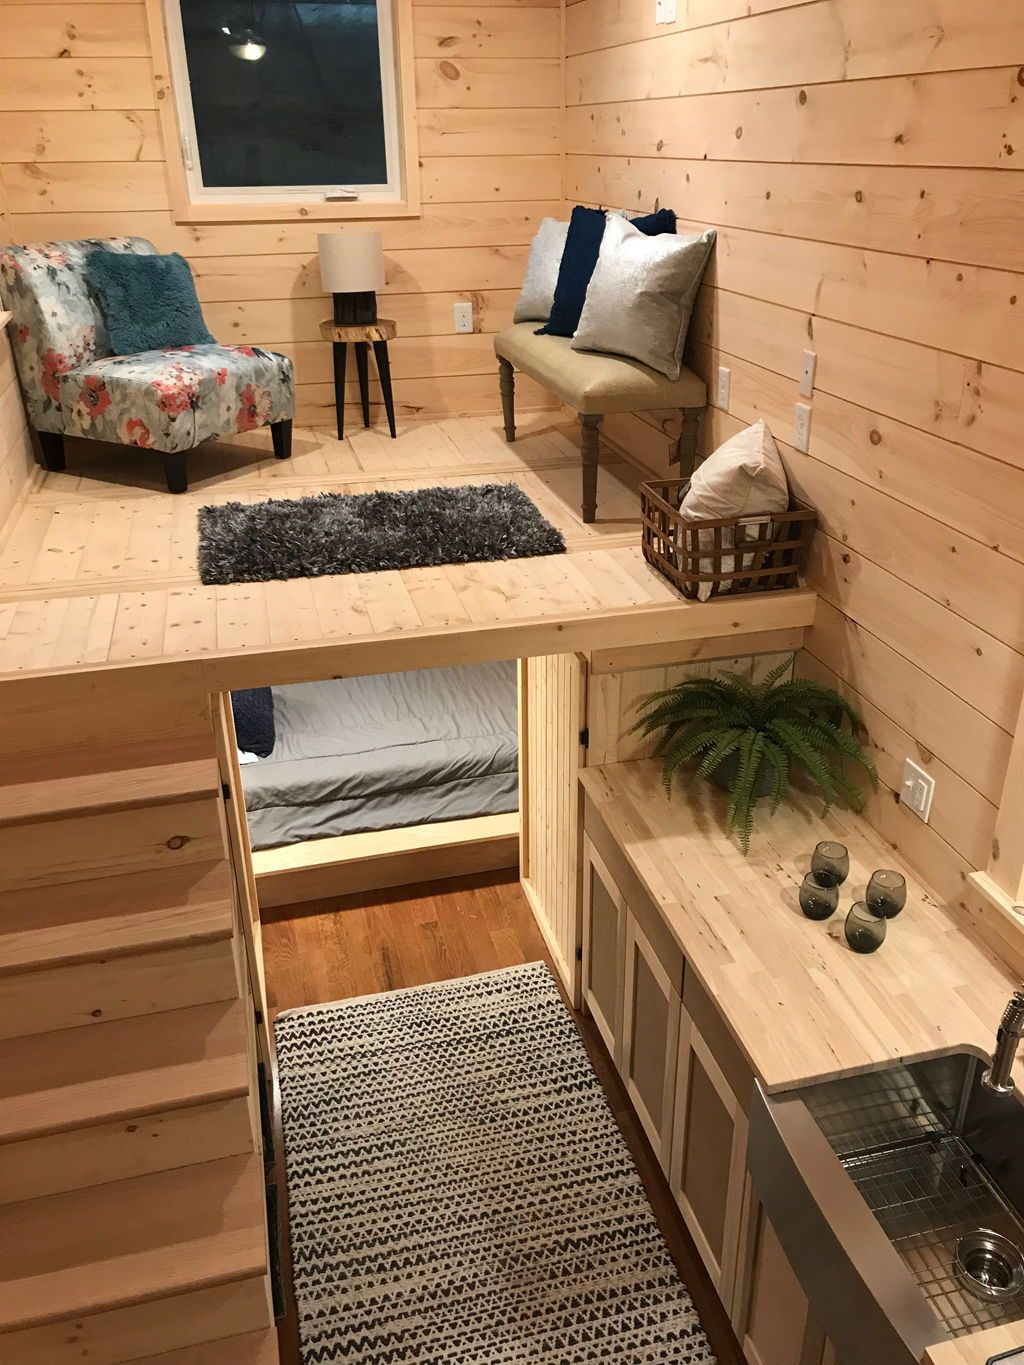 incredible hardwood floor bedroom   Sweet Dream by Incredible Tiny Homes   Tiny house design ...